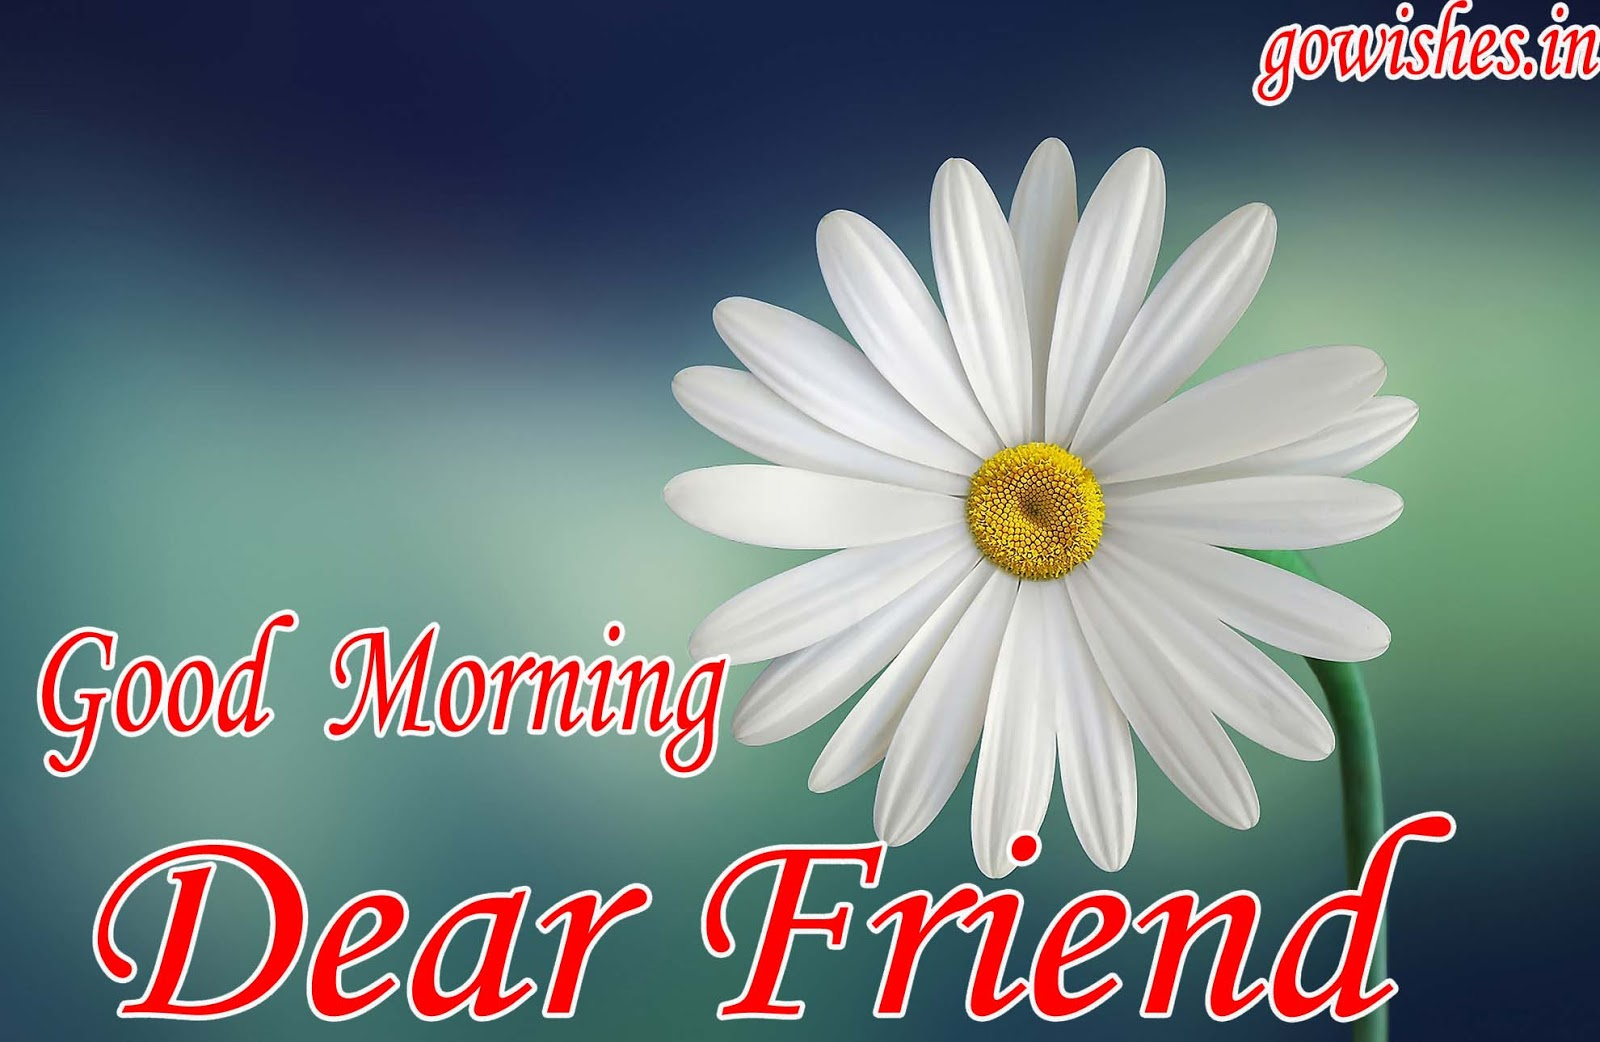 Best Good Morning Images Shayari Walpaper Gif Qutees